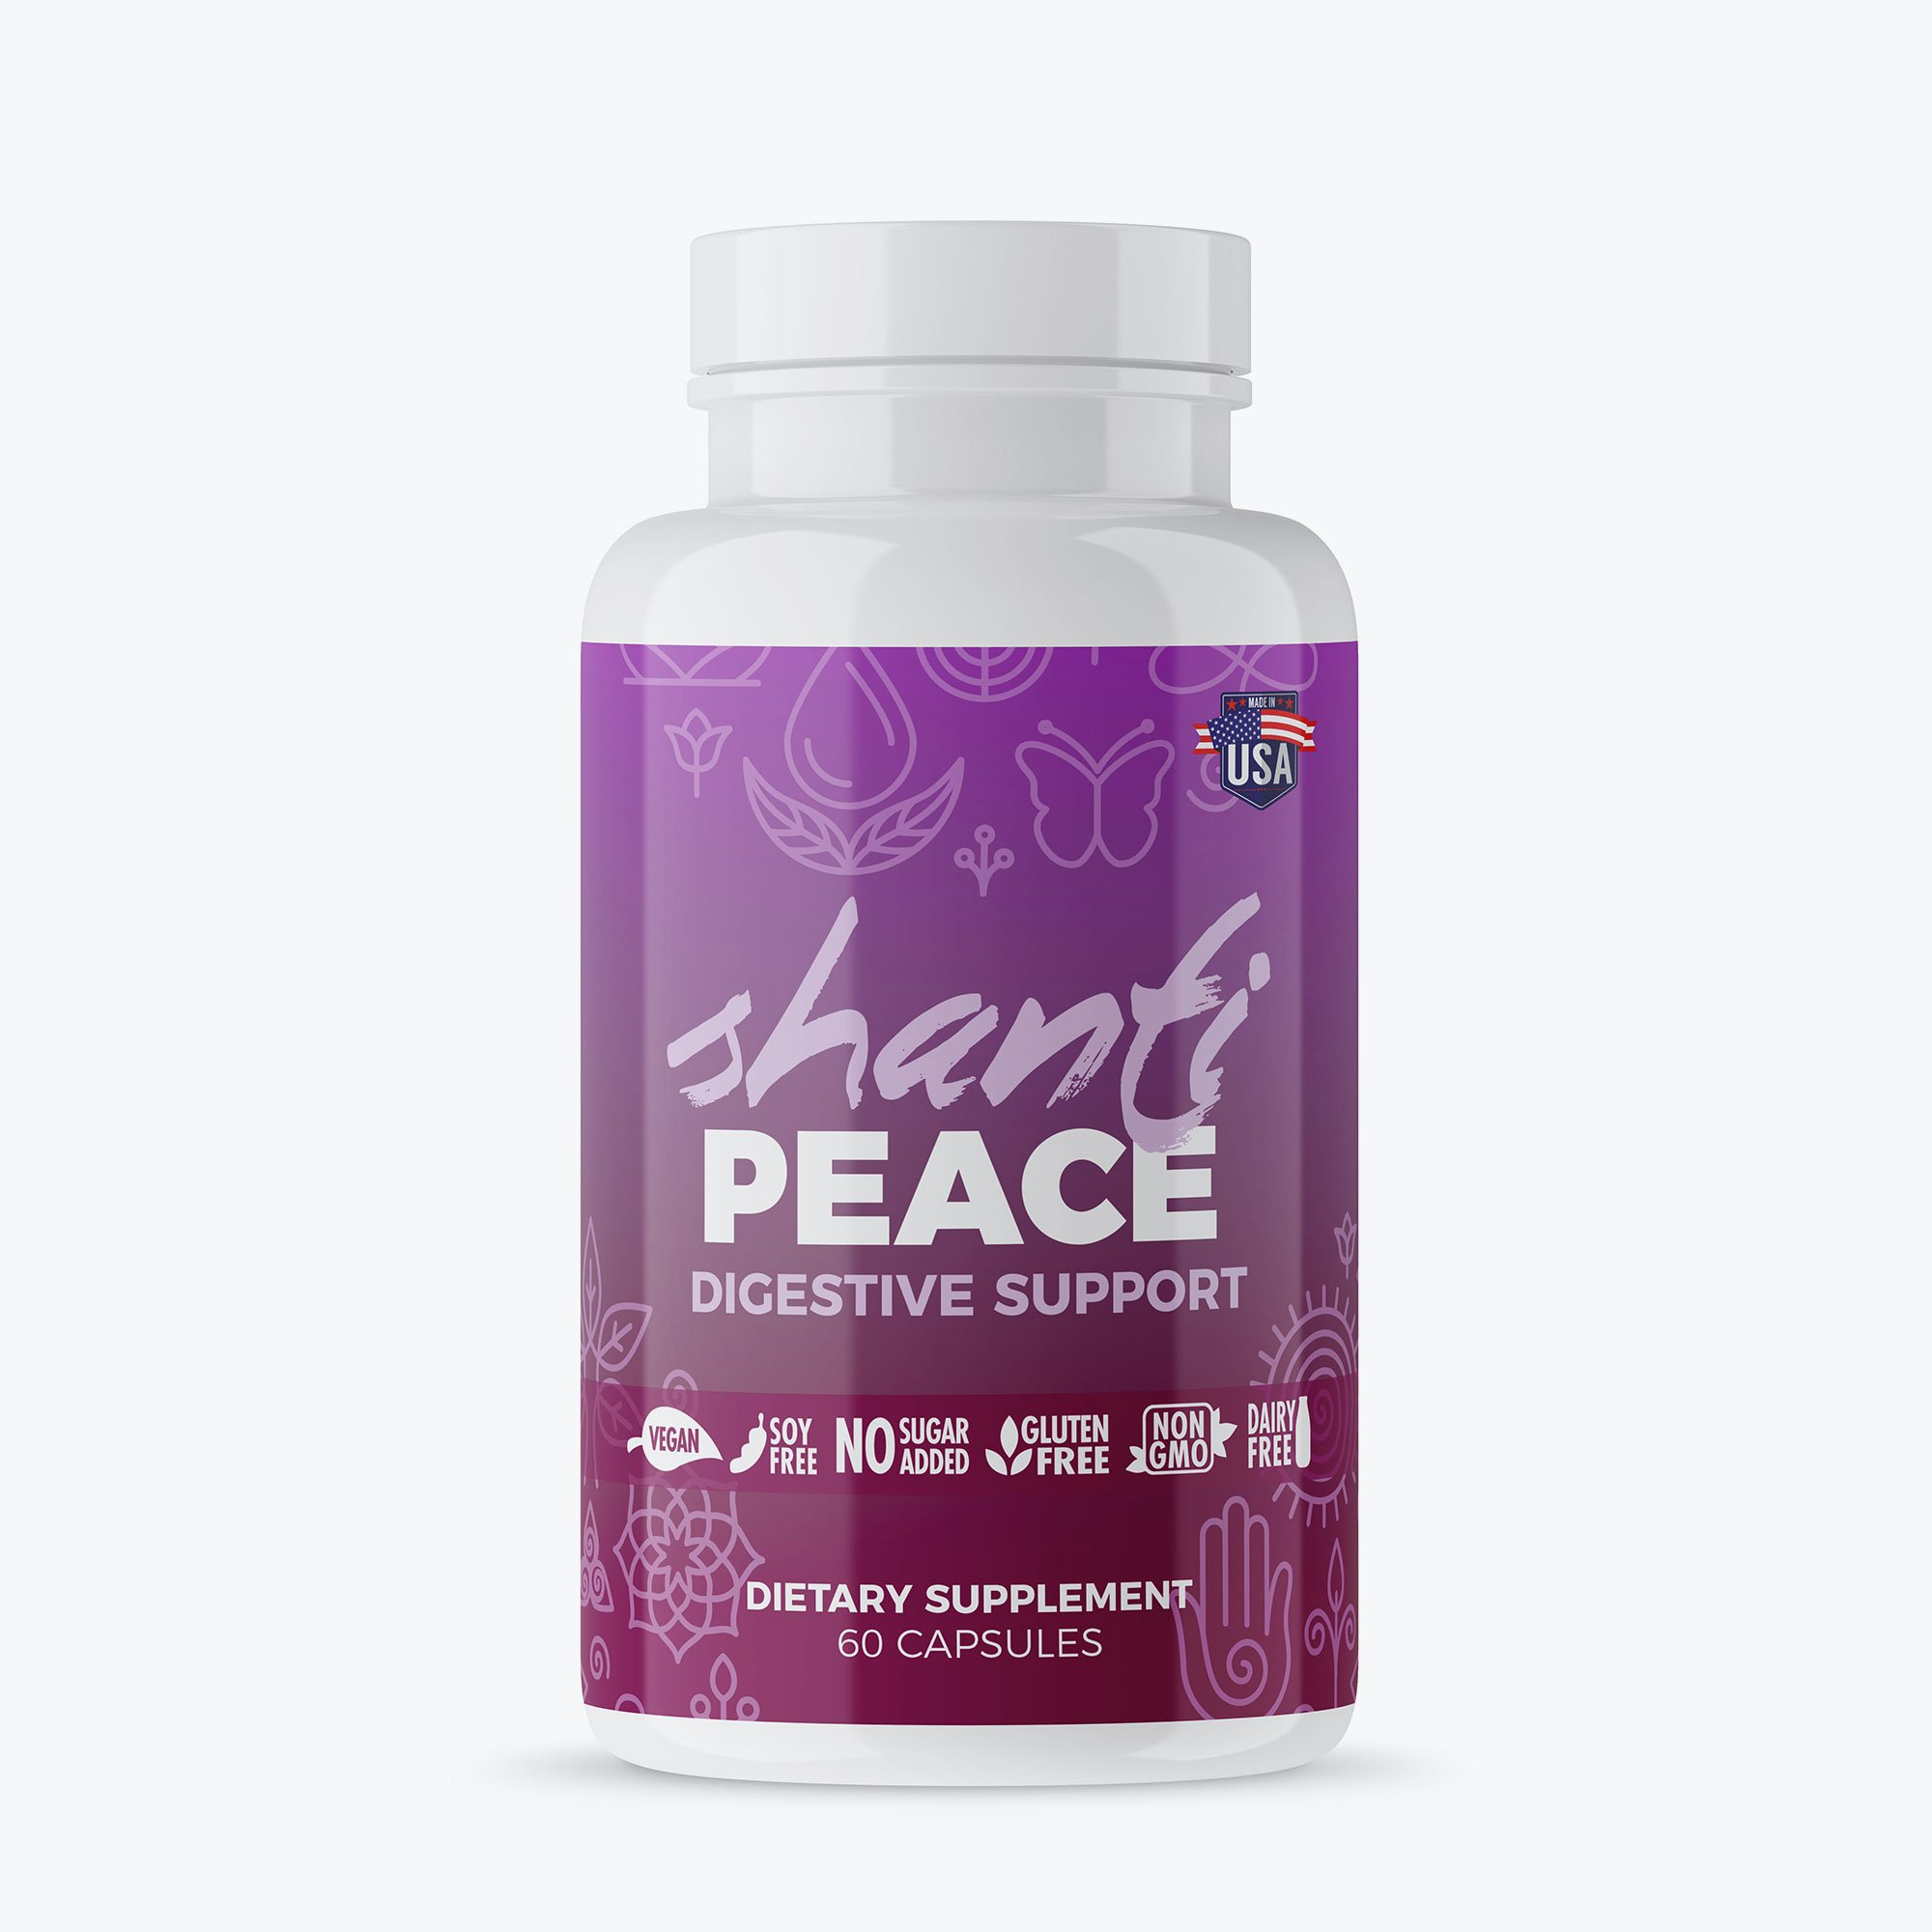 Image of Shanti Peace Digestive Support